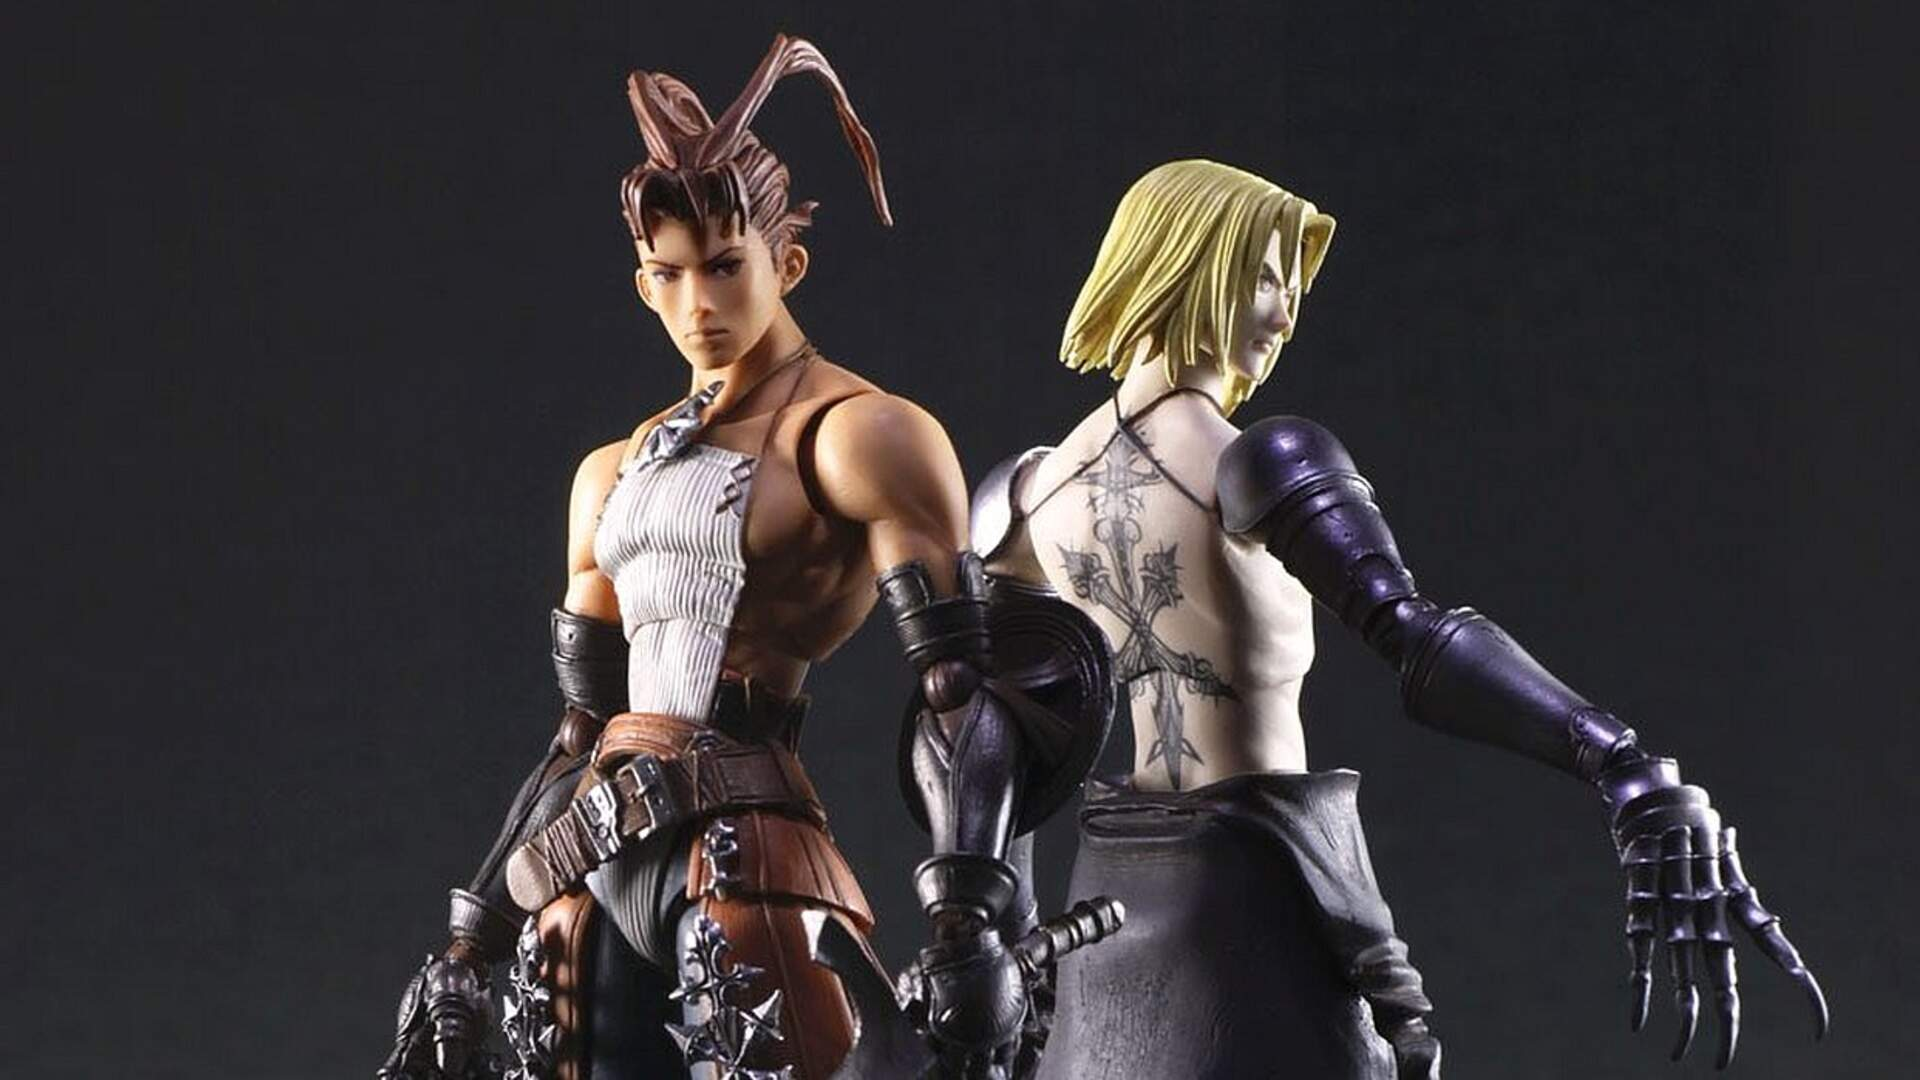 Vagrant Story Is Getting Bring Arts Figures for Its 20th Anniversary, but Will Ashley Riot Still Forego Pants?